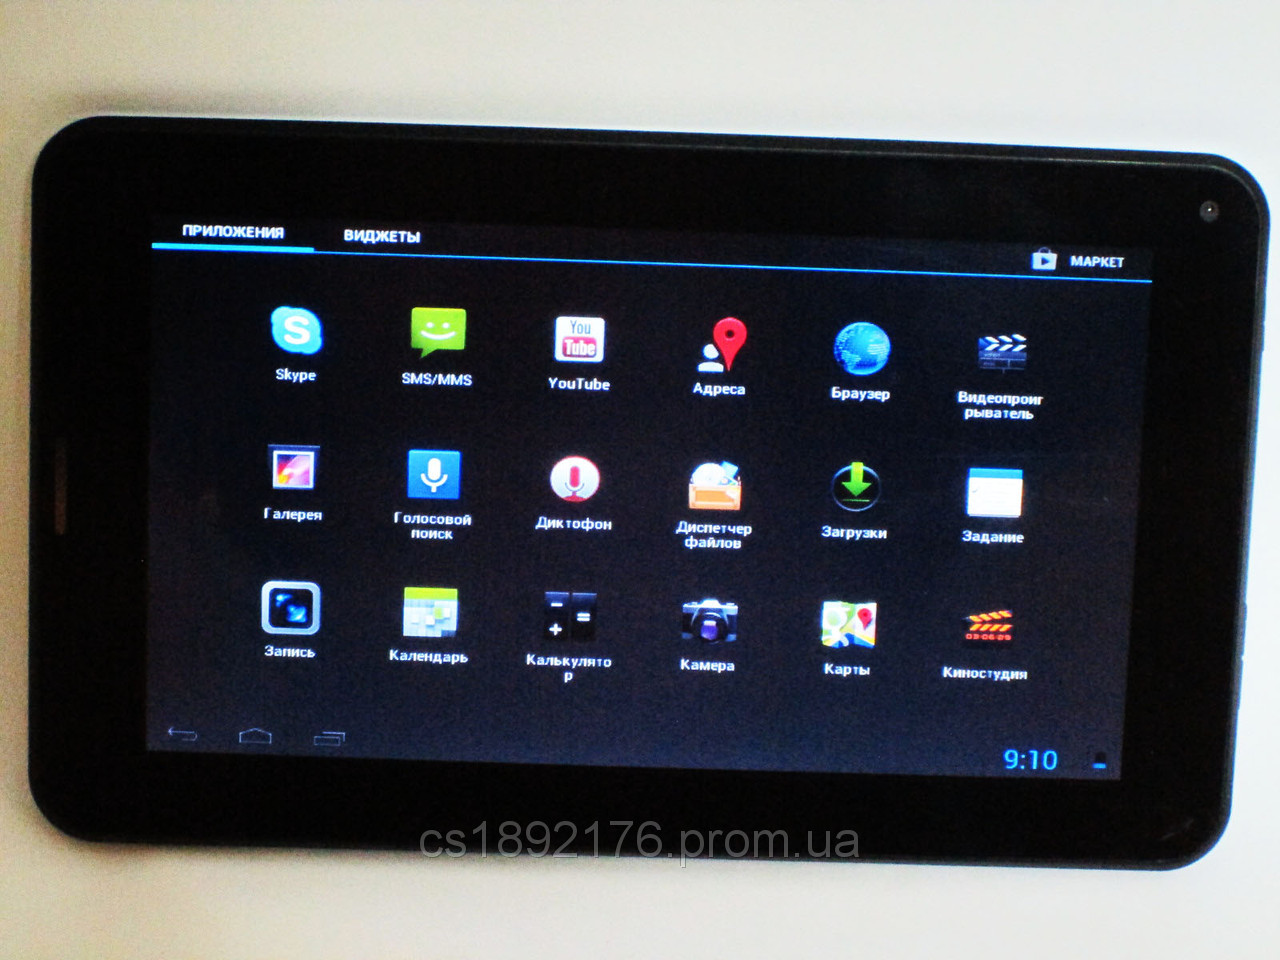 "Freelander PD200 GPS 7"" Планшет навигатор  + GSM 1.2Ггц Android4 GPS+WiFi+Видеорегистор"